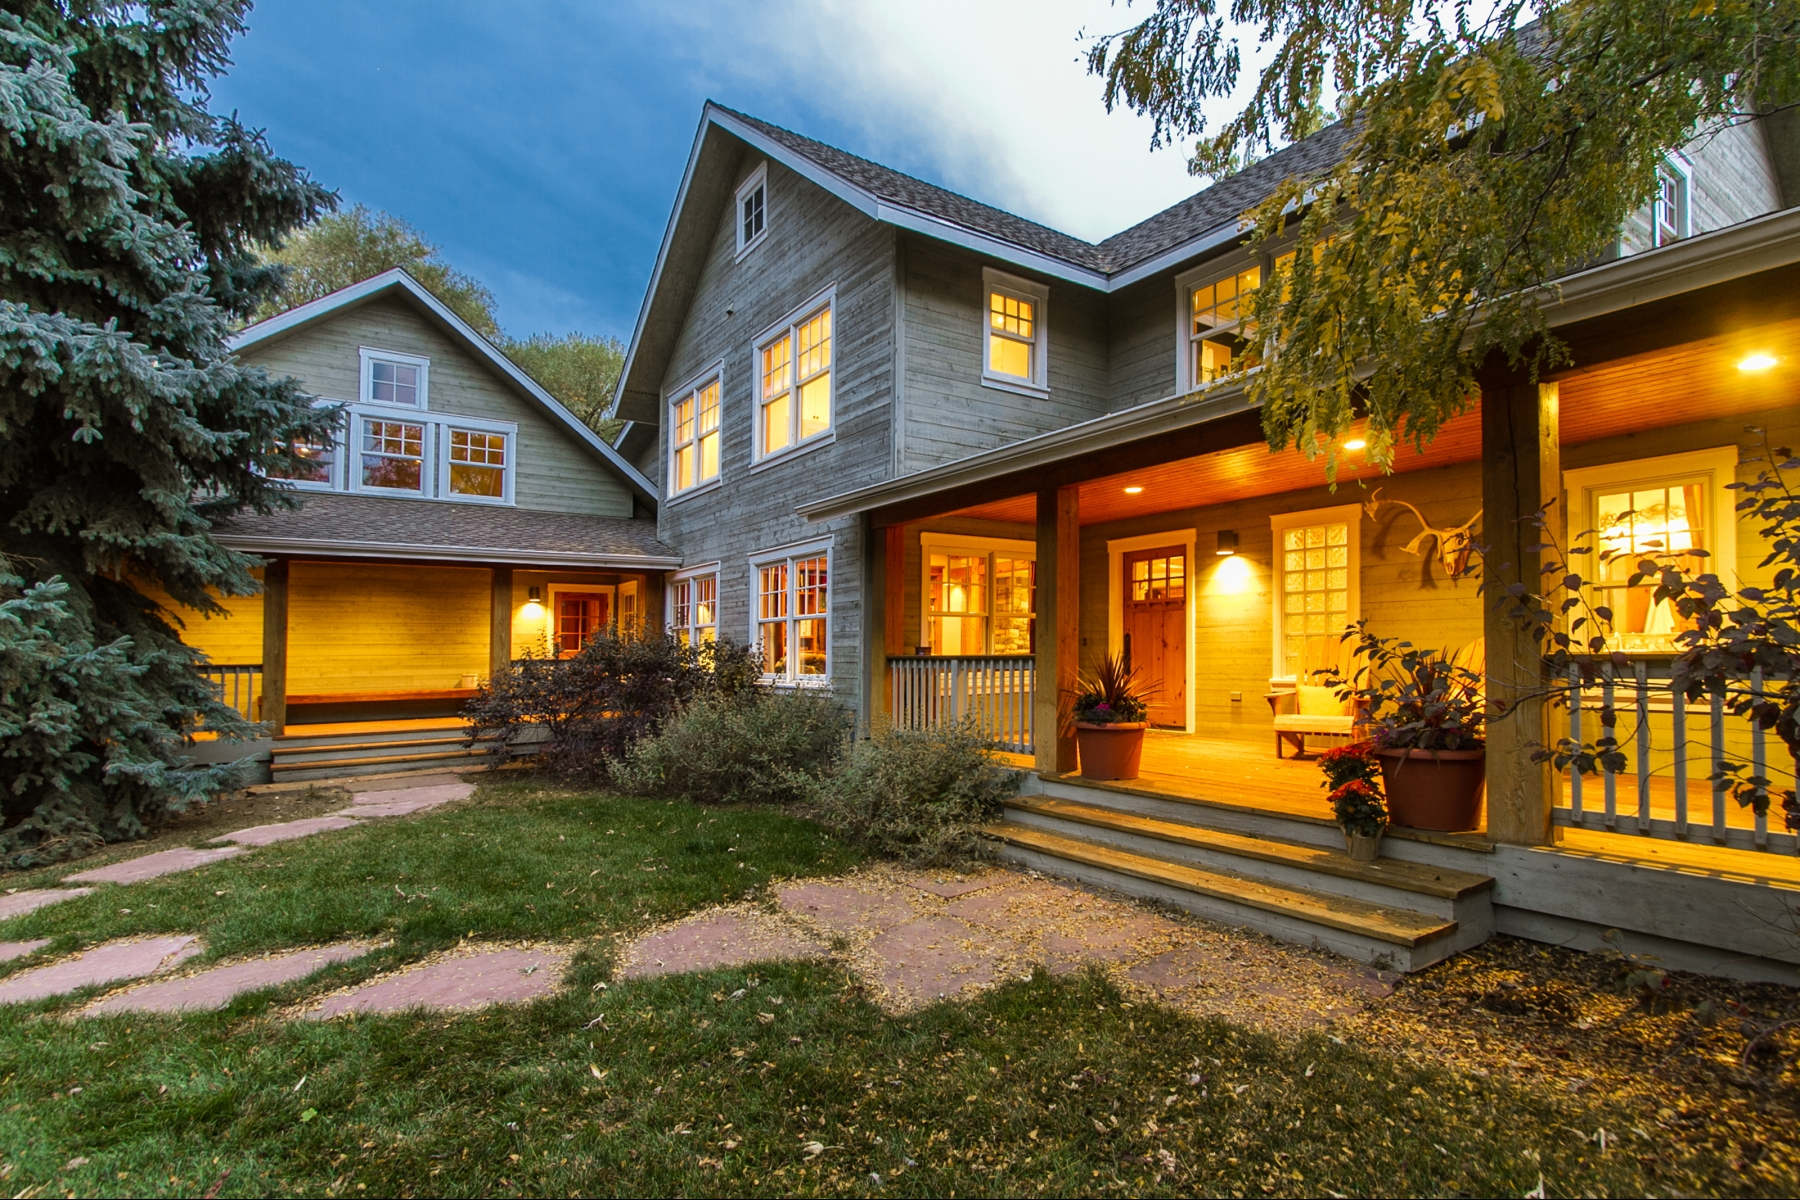 Pictured: 2035 95th Street, Boulder, CO. Listed by LIV Sotheby's International Realty for 3,125,000.